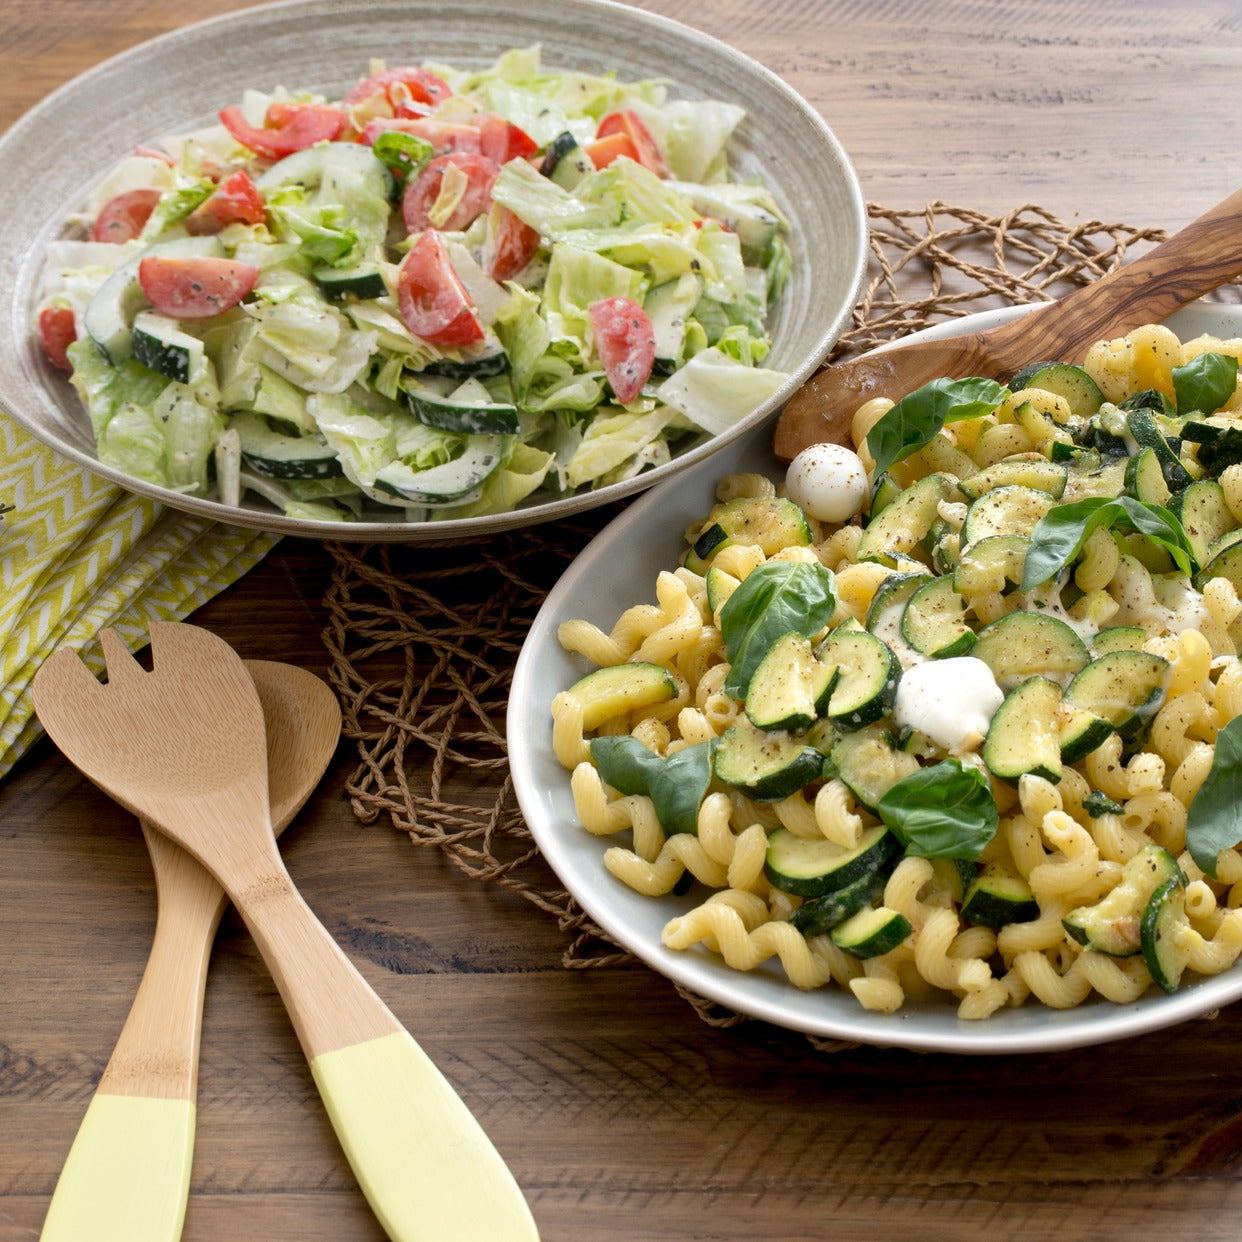 Summer Squash Cavatappi Pasta with Fresh Mozzarella & Chopped Salad